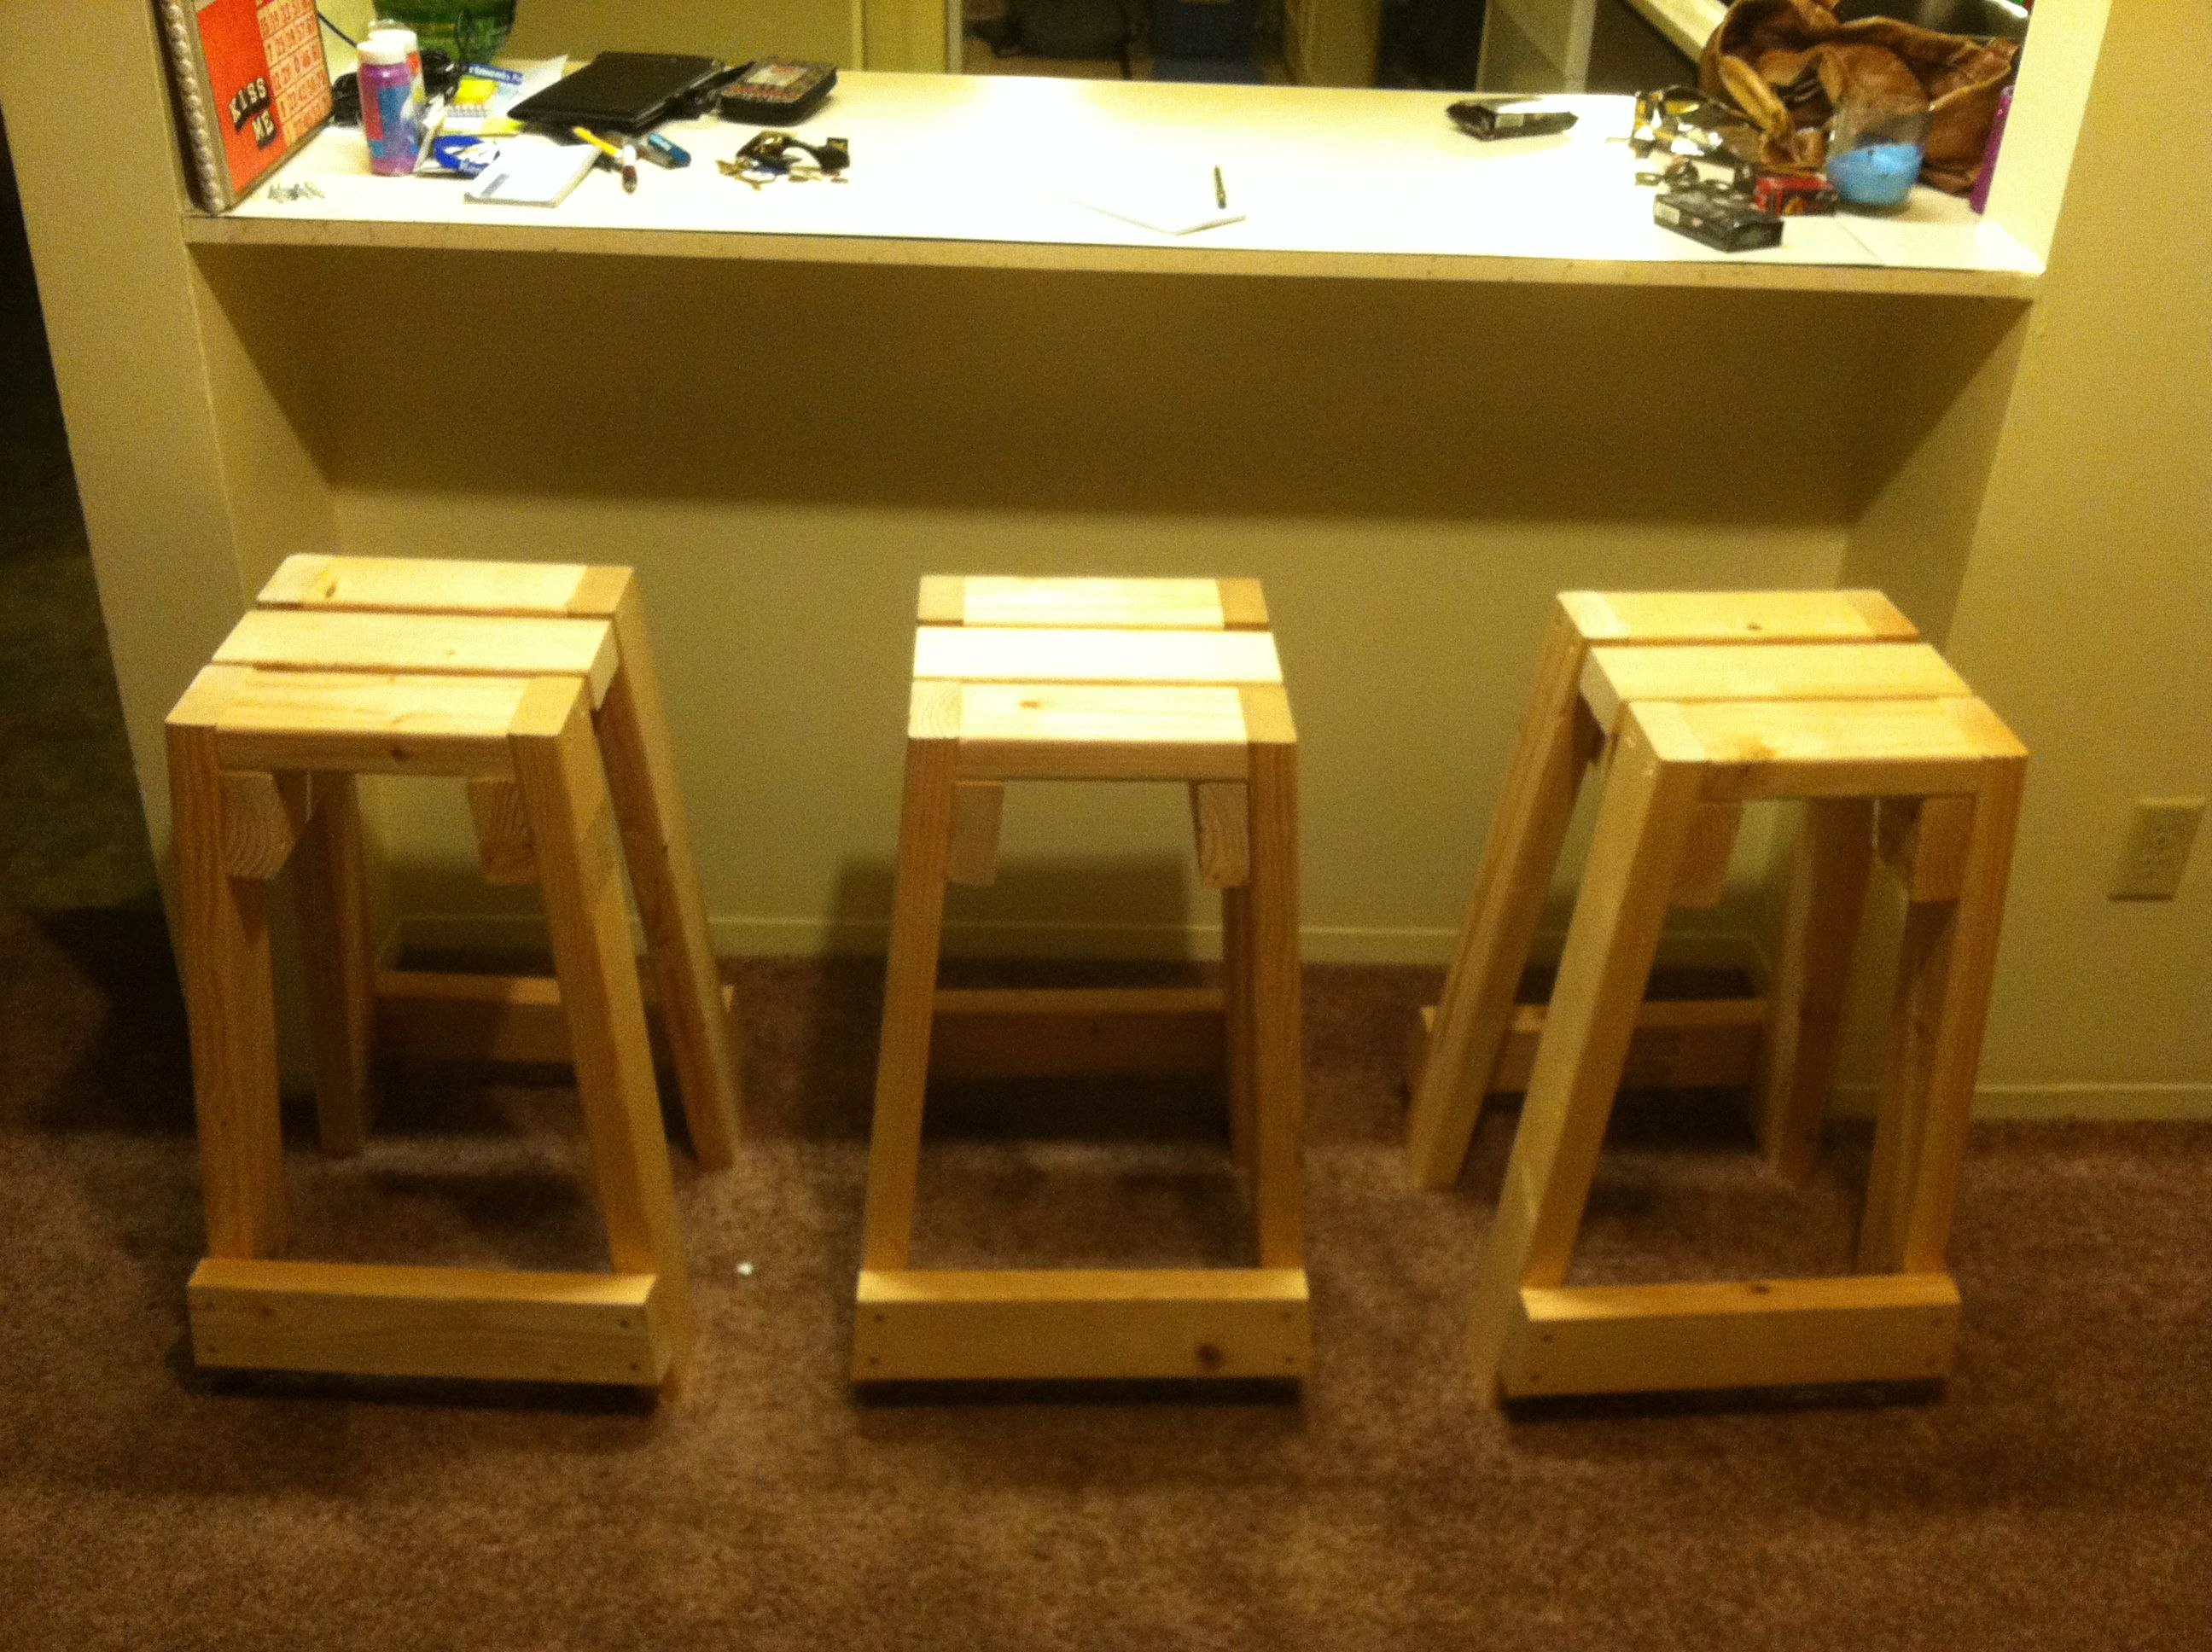 Quick build 2x4 stools my projects pinterest stools for 2x4 stool plans